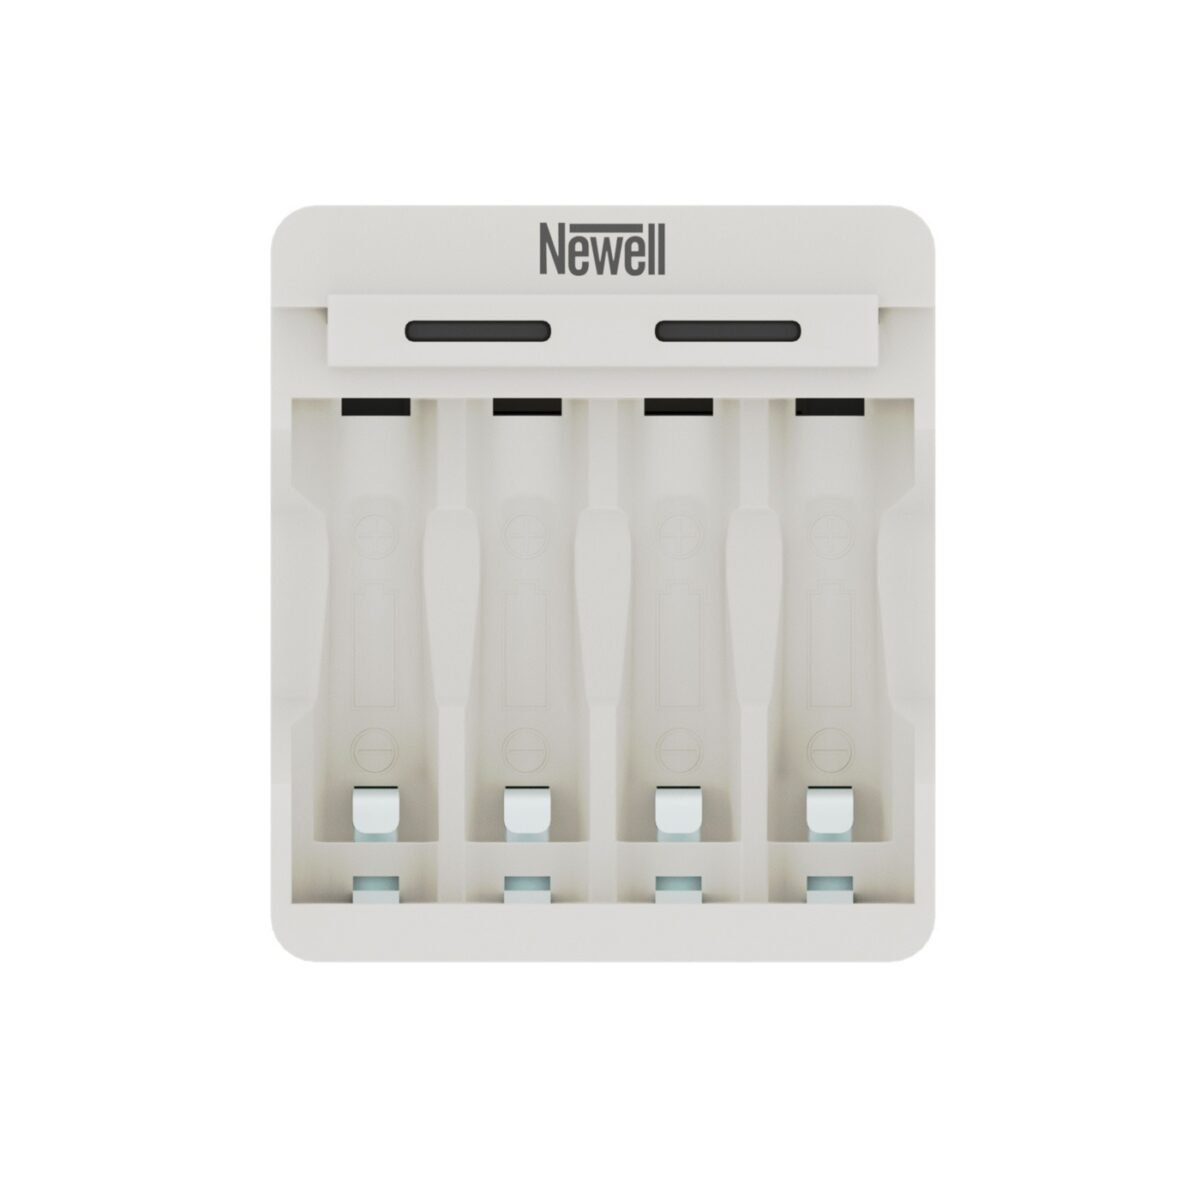 Newell Urja battery charger